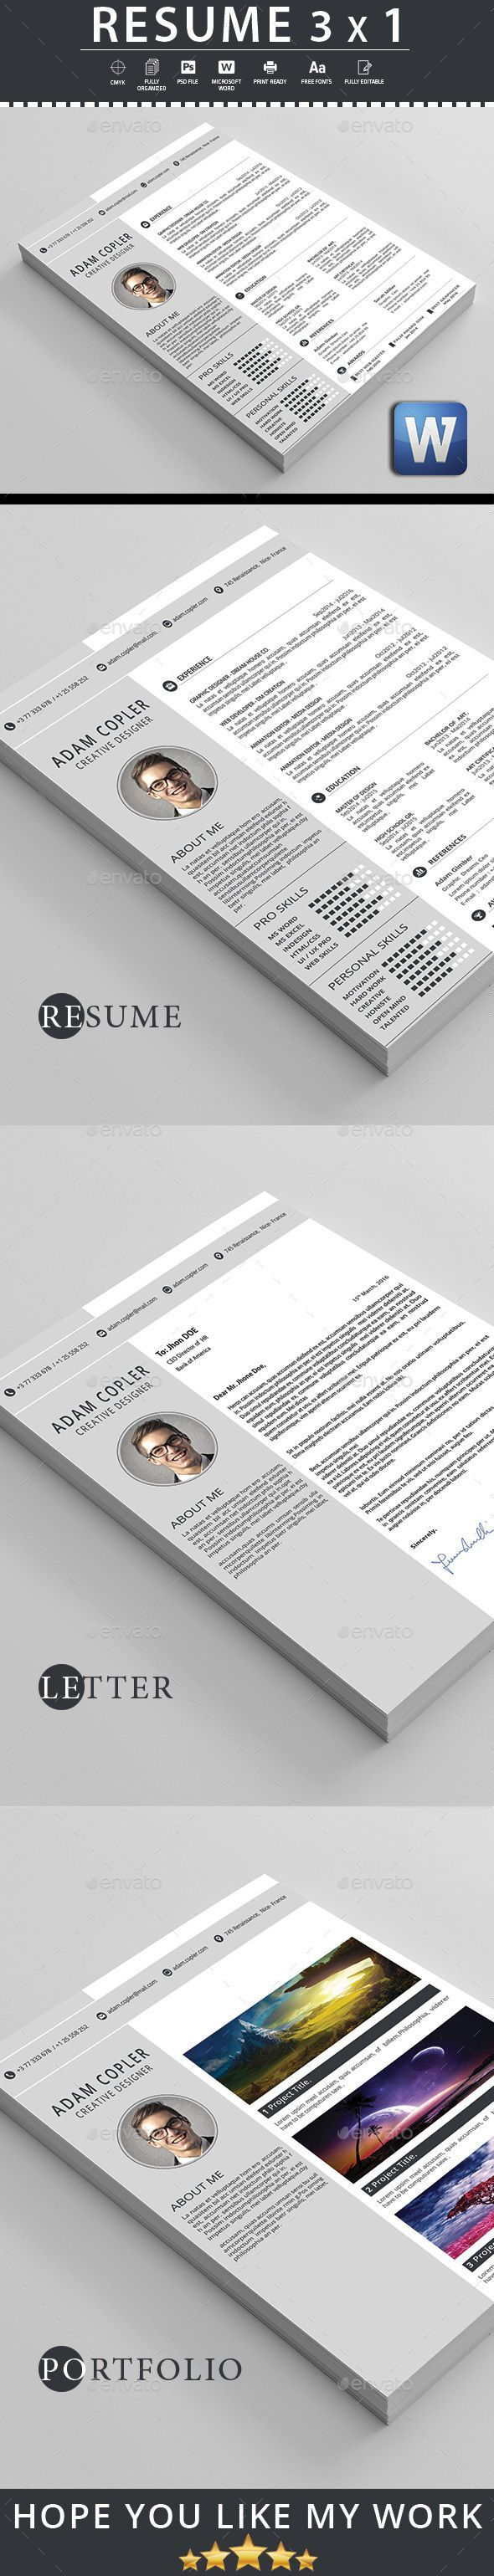 Resume Template 3x1 Resumes Stationery Template